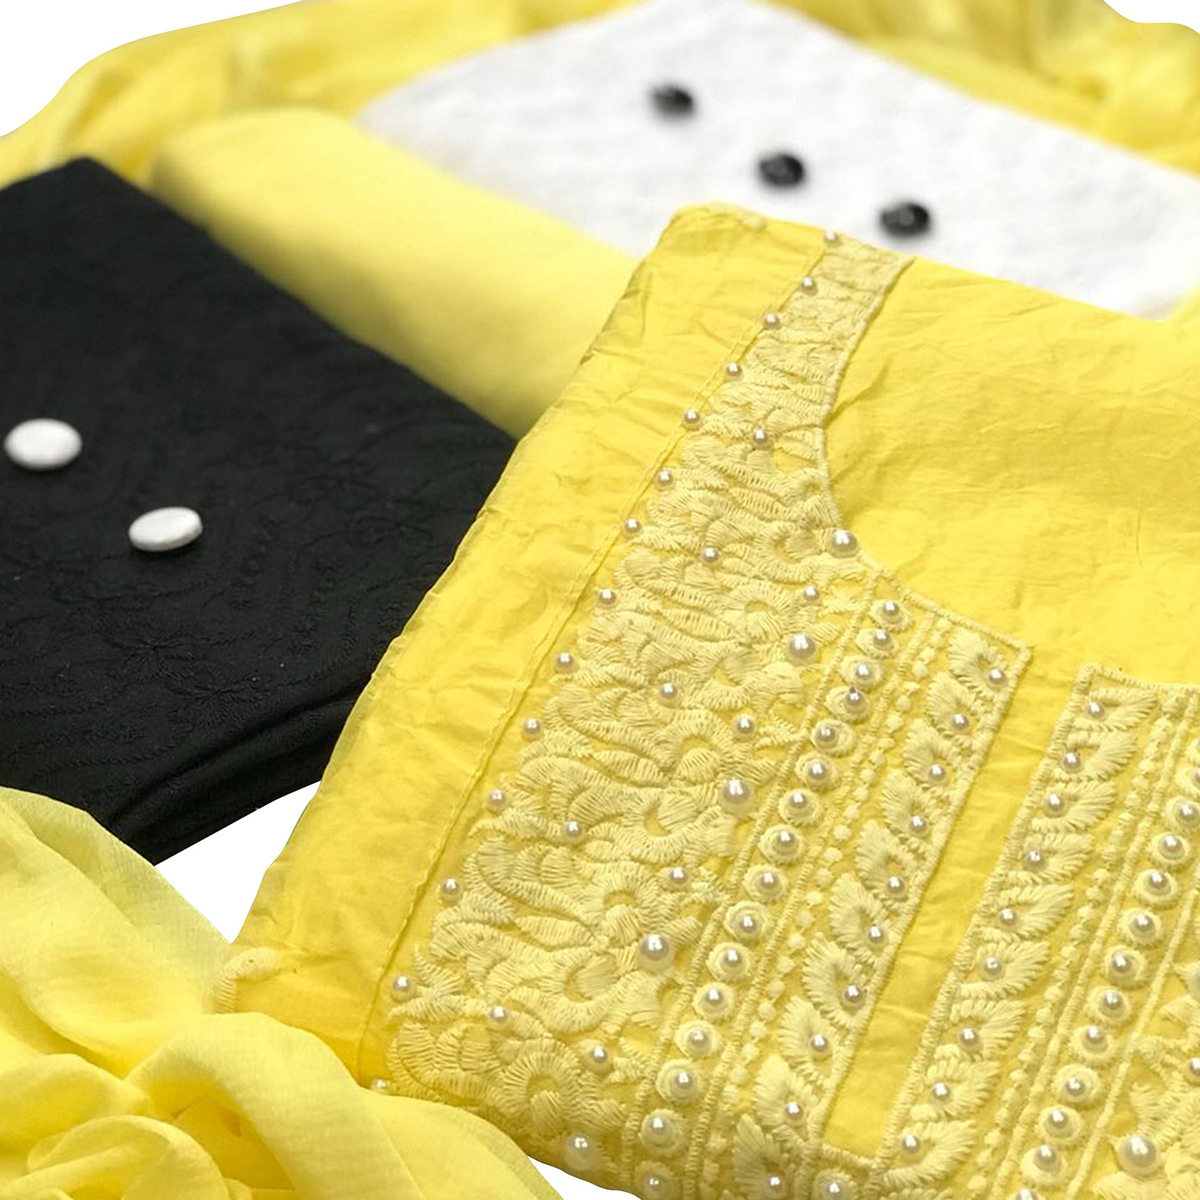 Modal-Cotton Dress Material : Pack Of 3 Tops (Yellow-Black-White) With 1 Bottom & Dupatta